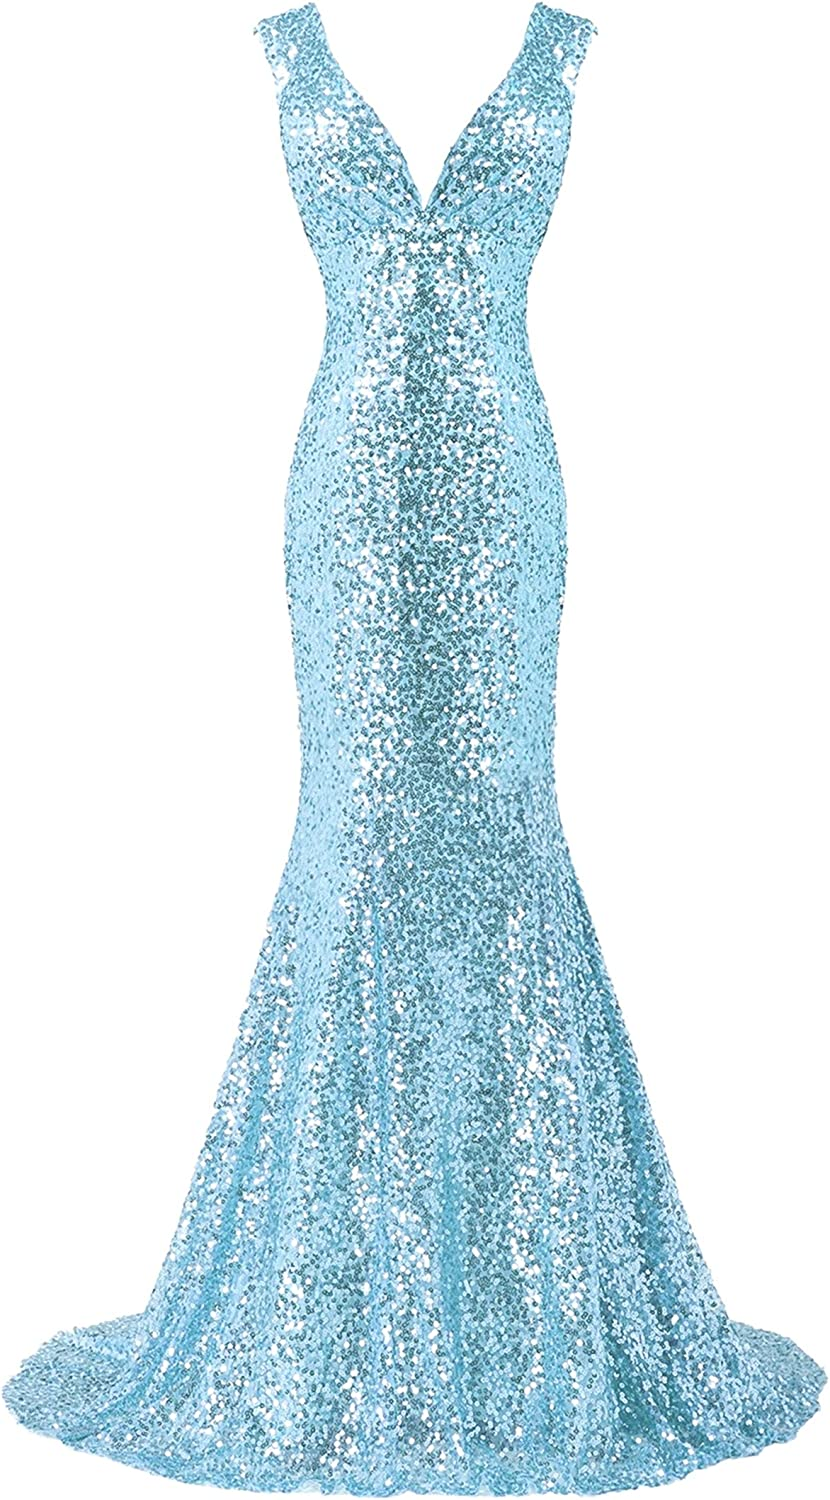 Bess Bridal Women's Sequined Deep V Neck Lace Up Mermaid Prom Evening Dress